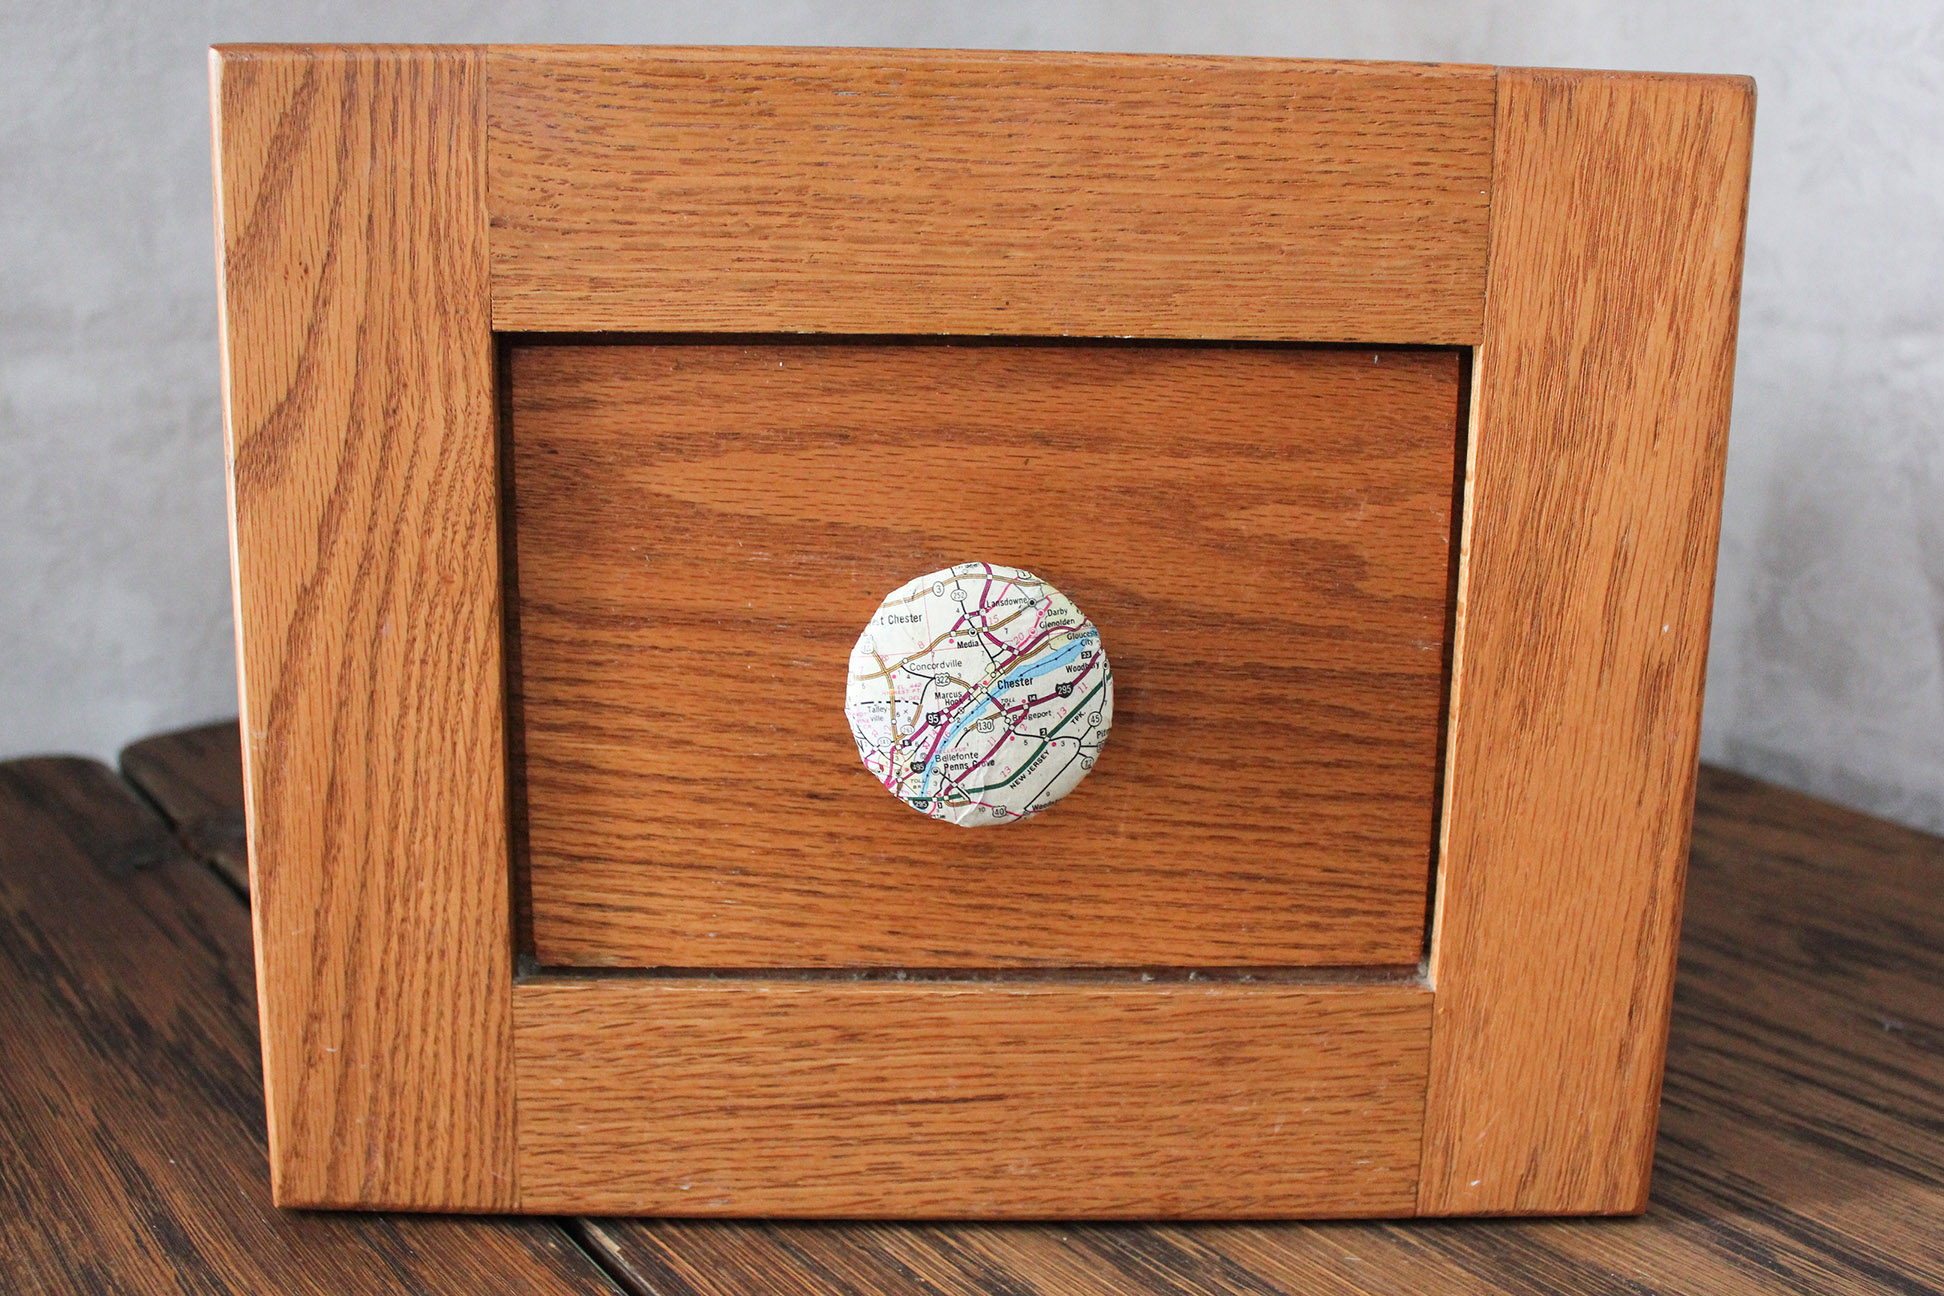 Personalize Your Kitchen With DIY Cabinet Knobs